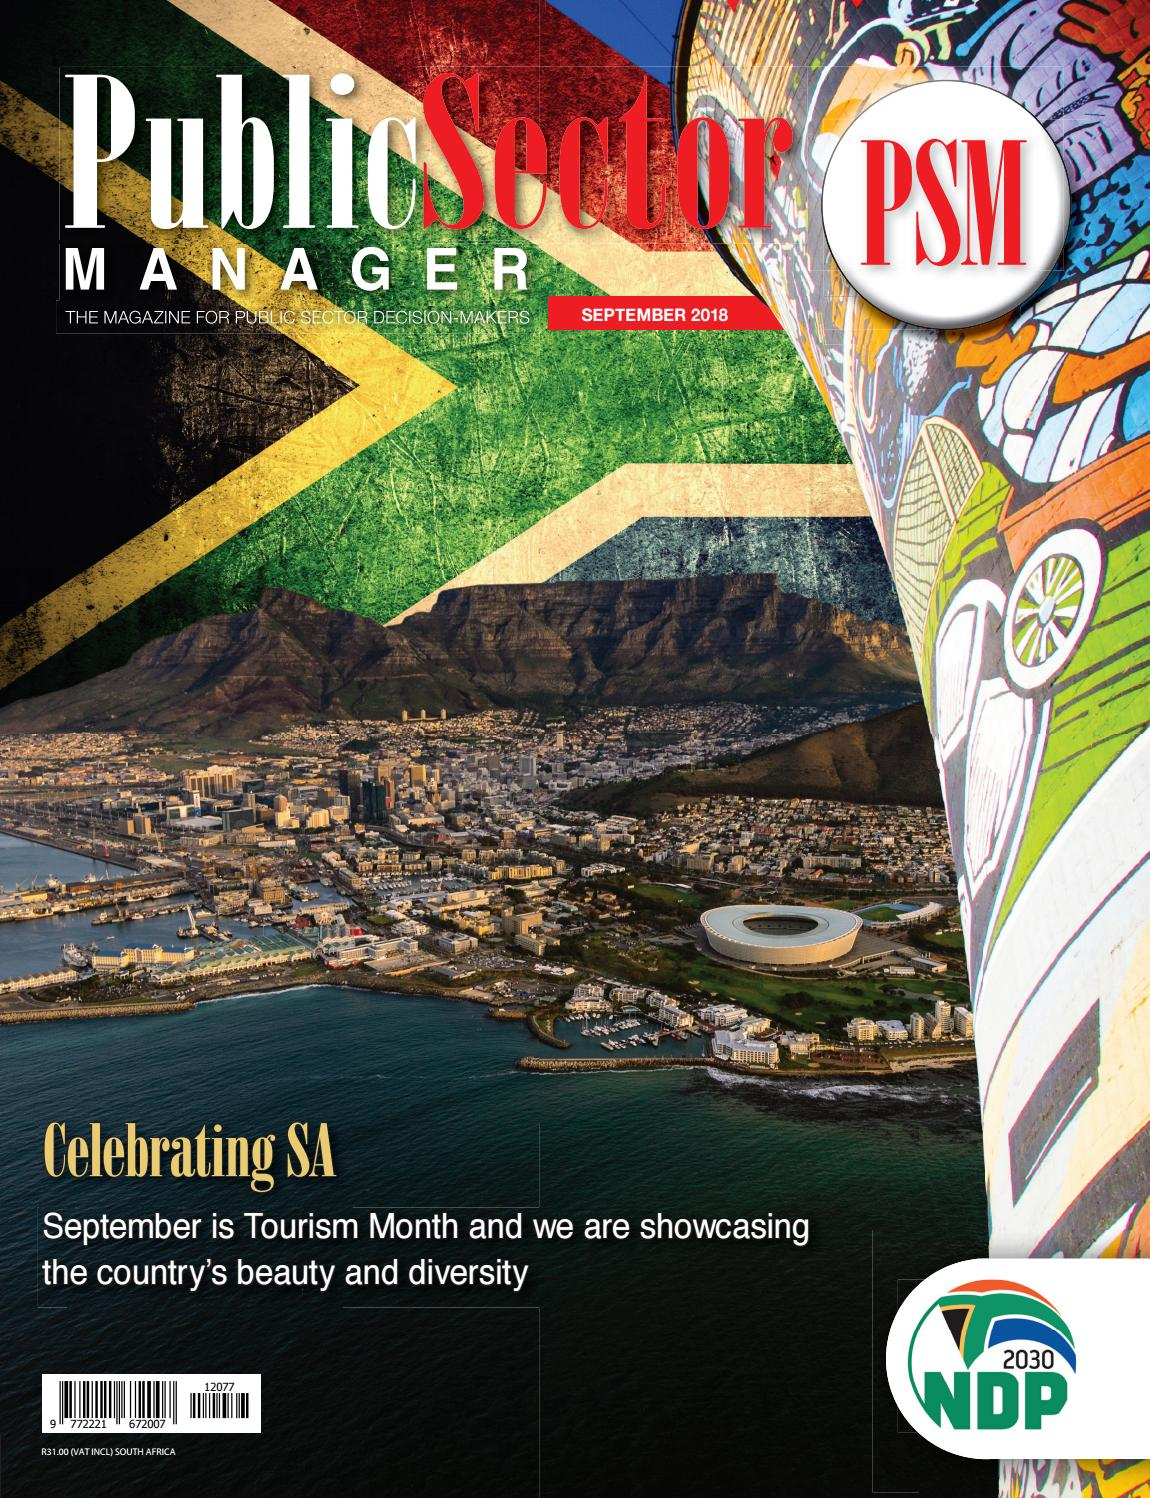 PSM September 2018 Edition by Topco Media - issuu